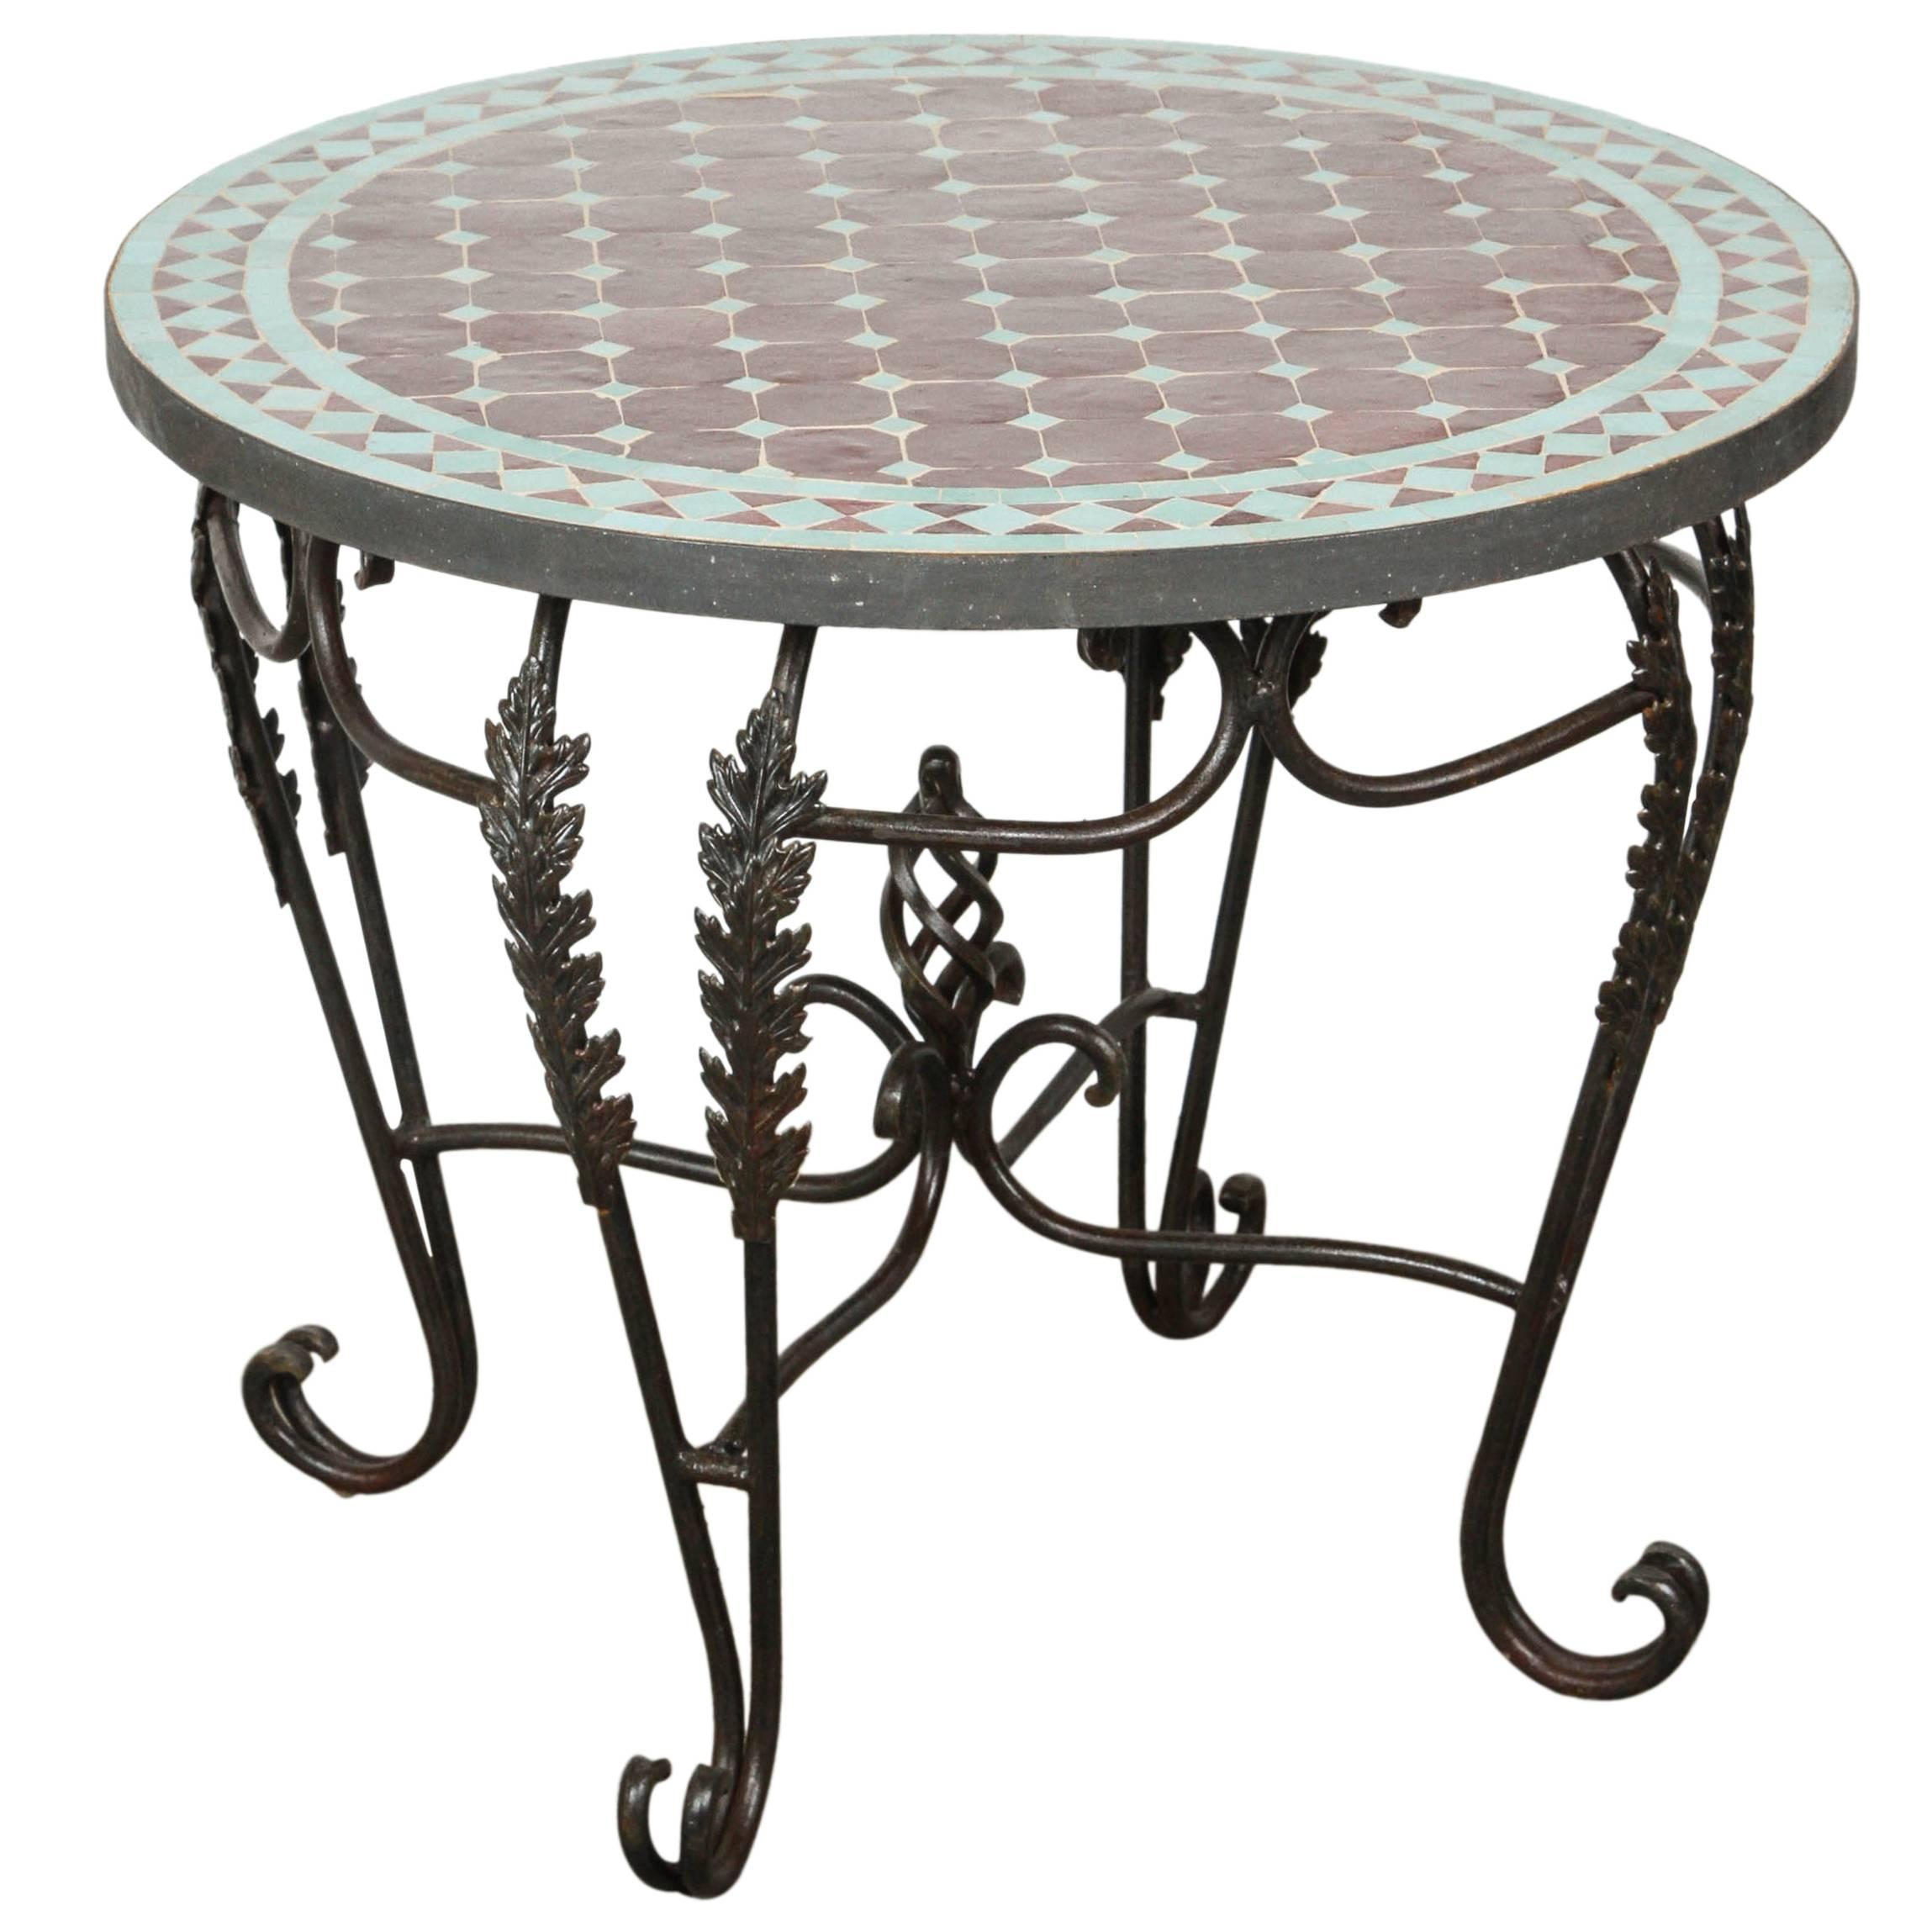 moroccan round mosaic tile side table indoor outdoor master accent white runner inexpensive patio furniture sets laminate flooring doorway transition chests cabinets metal drum